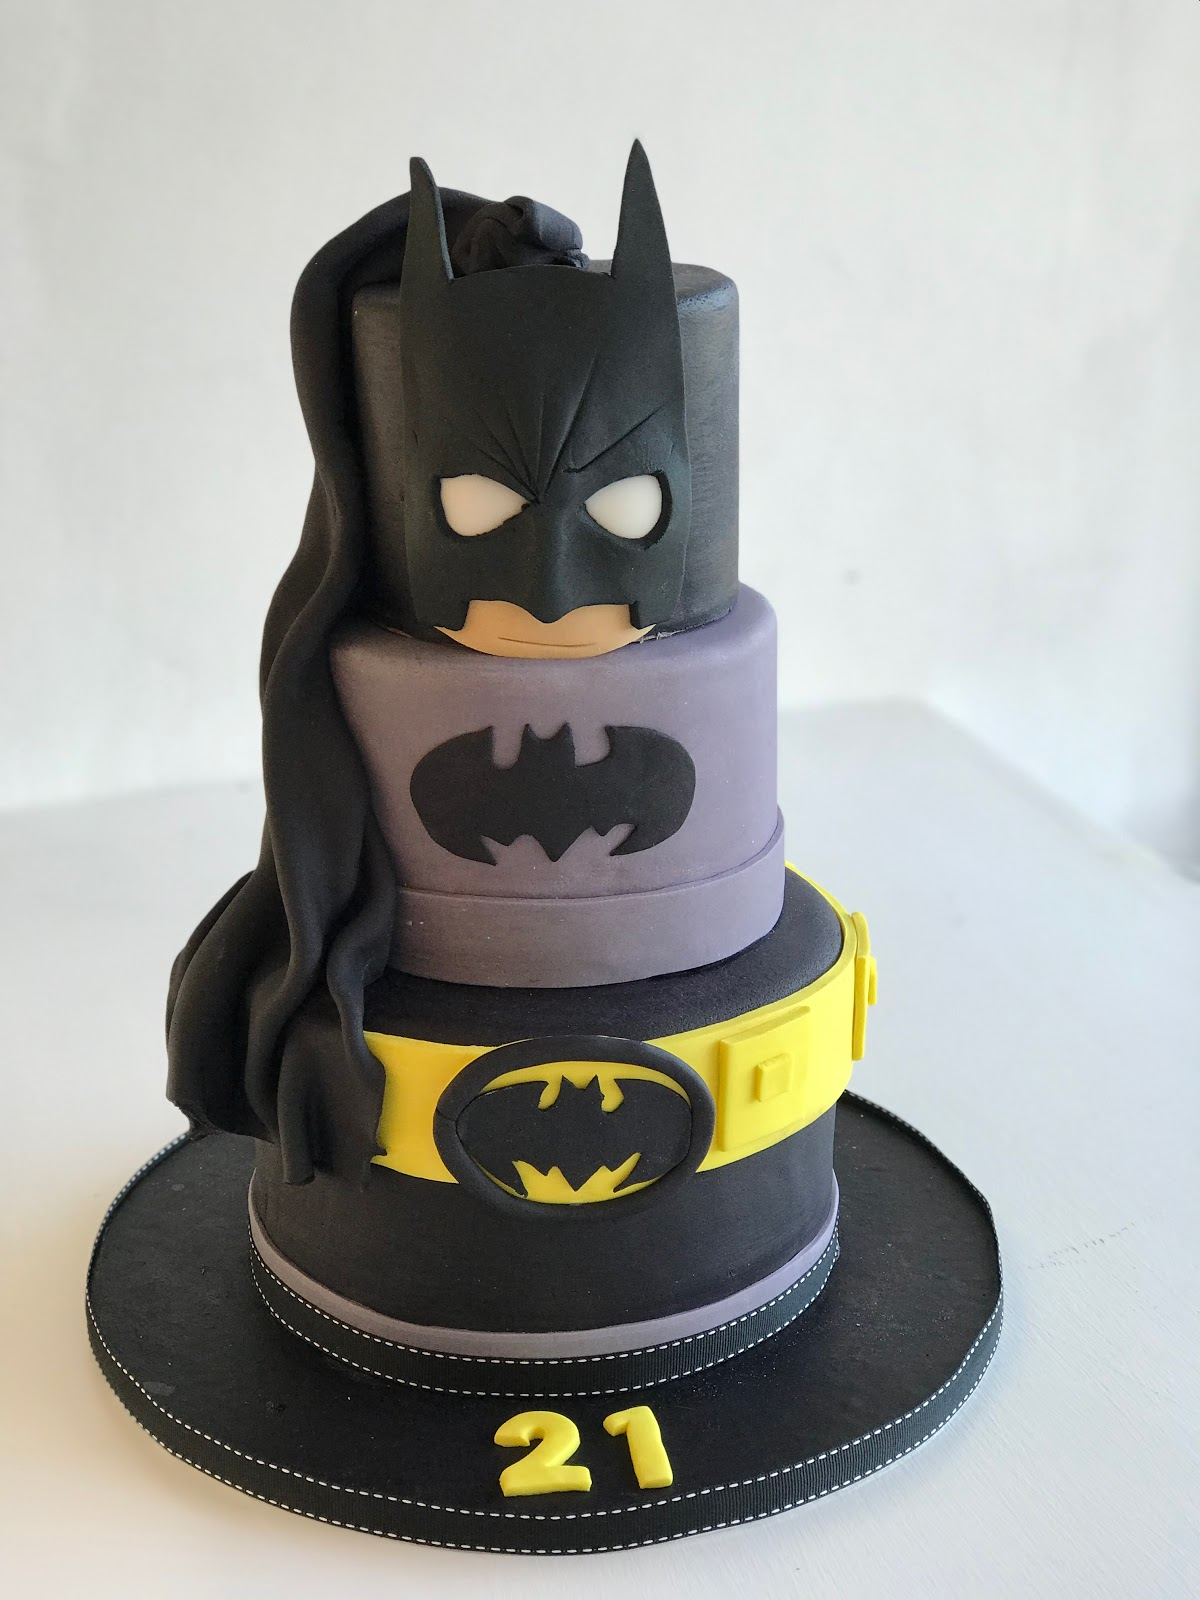 Birthday Cakes Durbanville Cape Town I Made This Cool Batman Cake For A Guy Who Turned 21 He Loved It